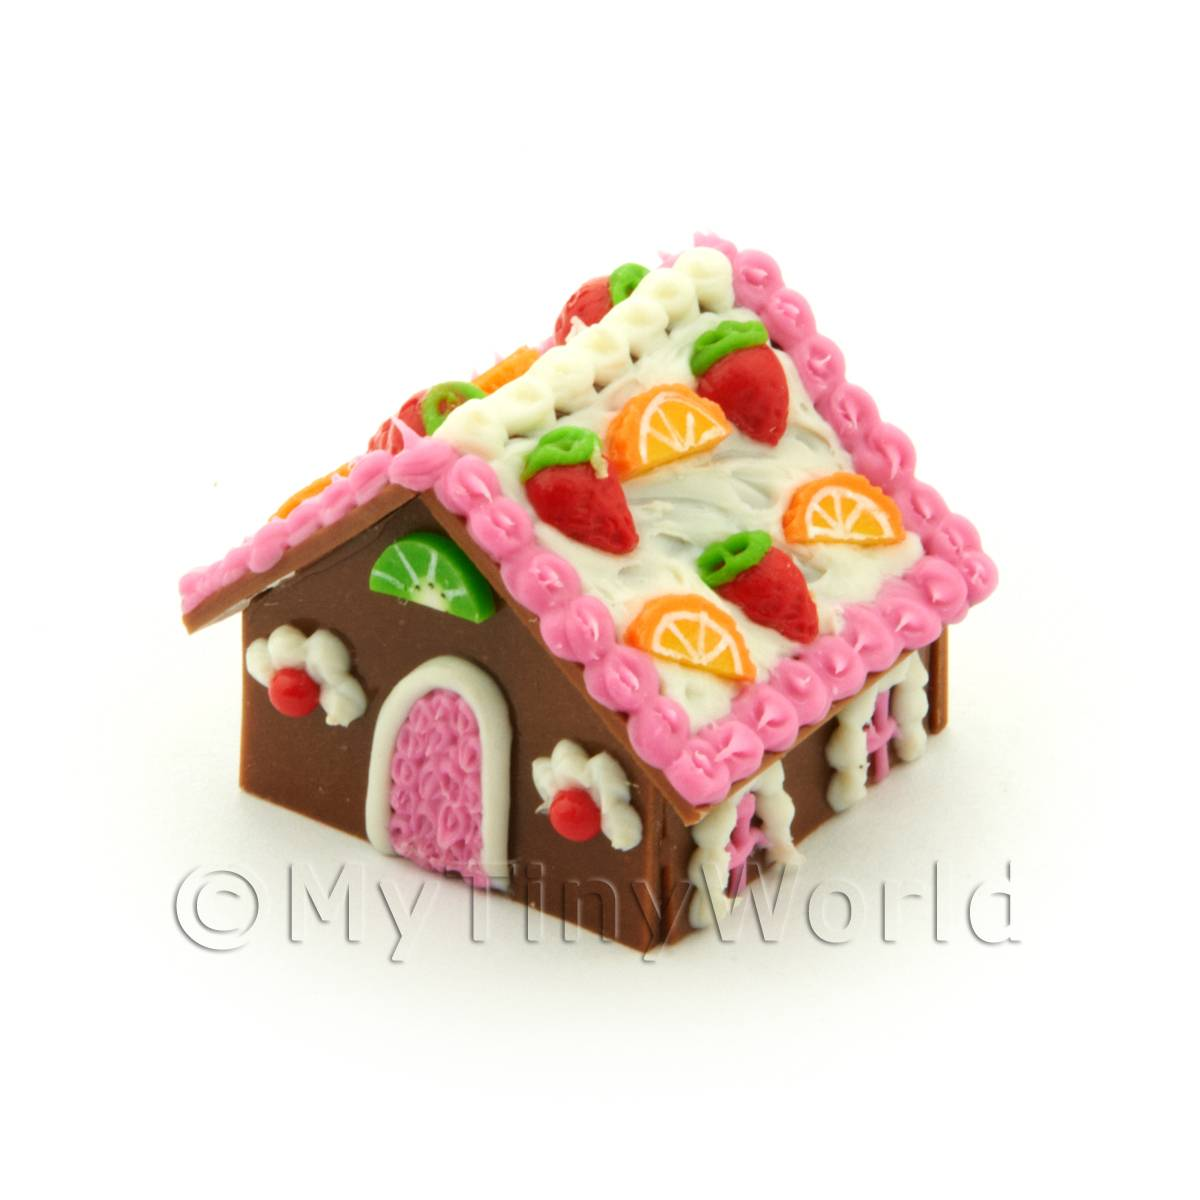 Dolls House Miniature Pink Trim Gingerbread House